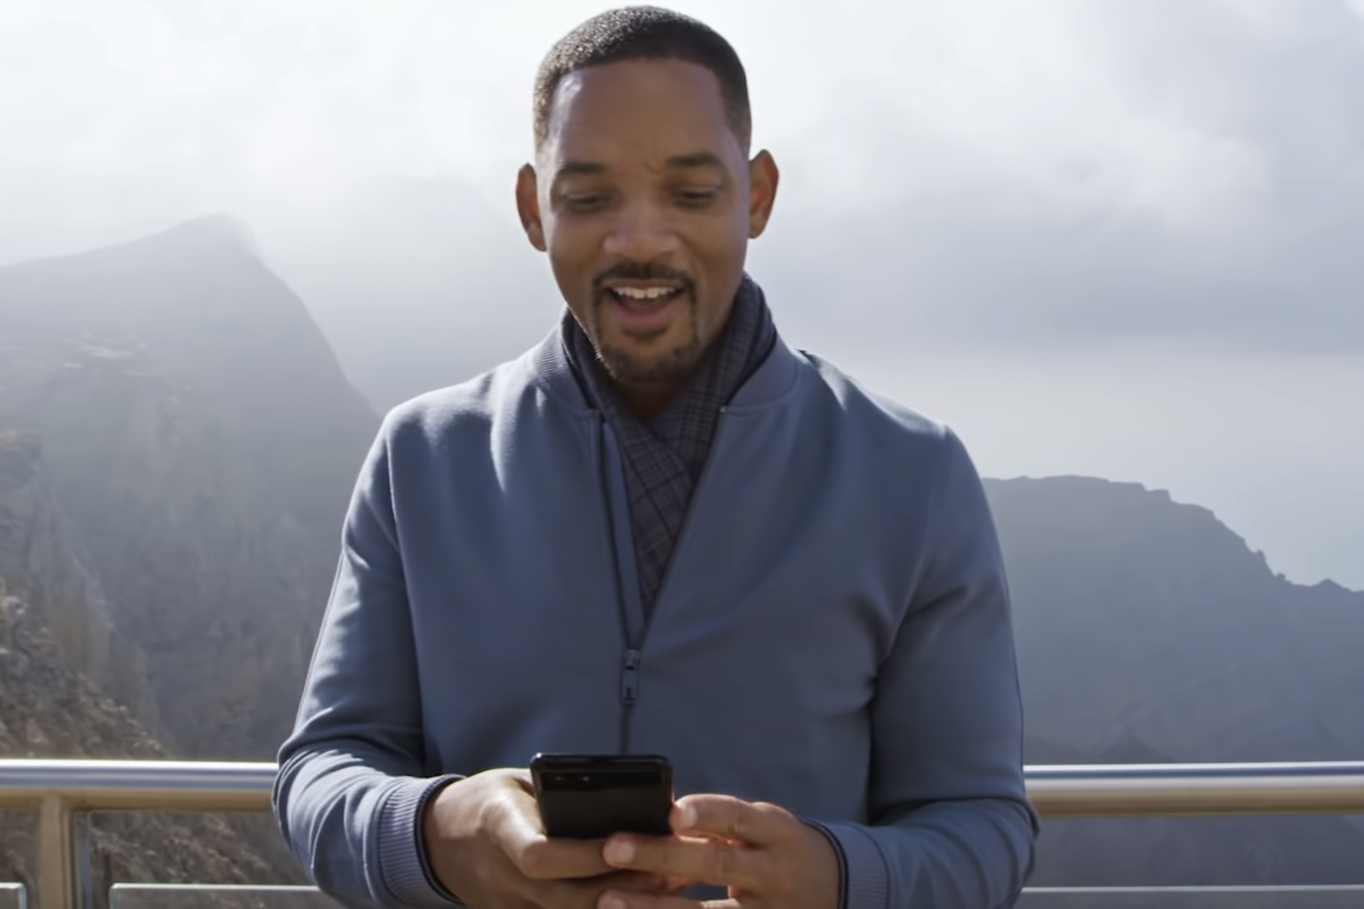 YouTube Rewind 2018 becomes website's second most disliked video of all time after Justin Bieber